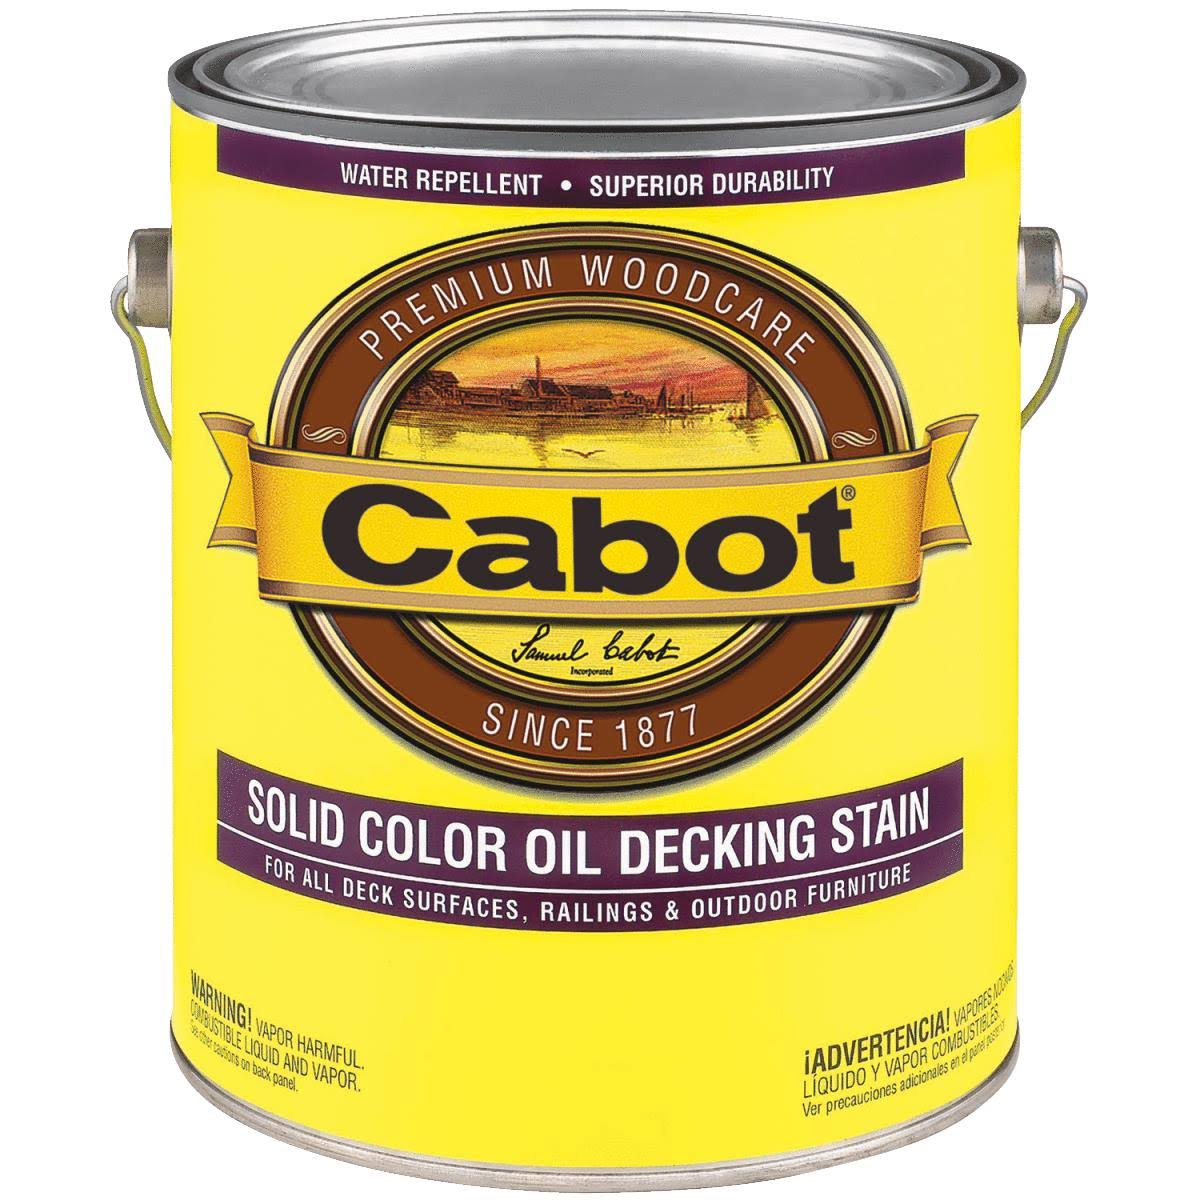 Cabot Decking Stain - Solid Color Oil